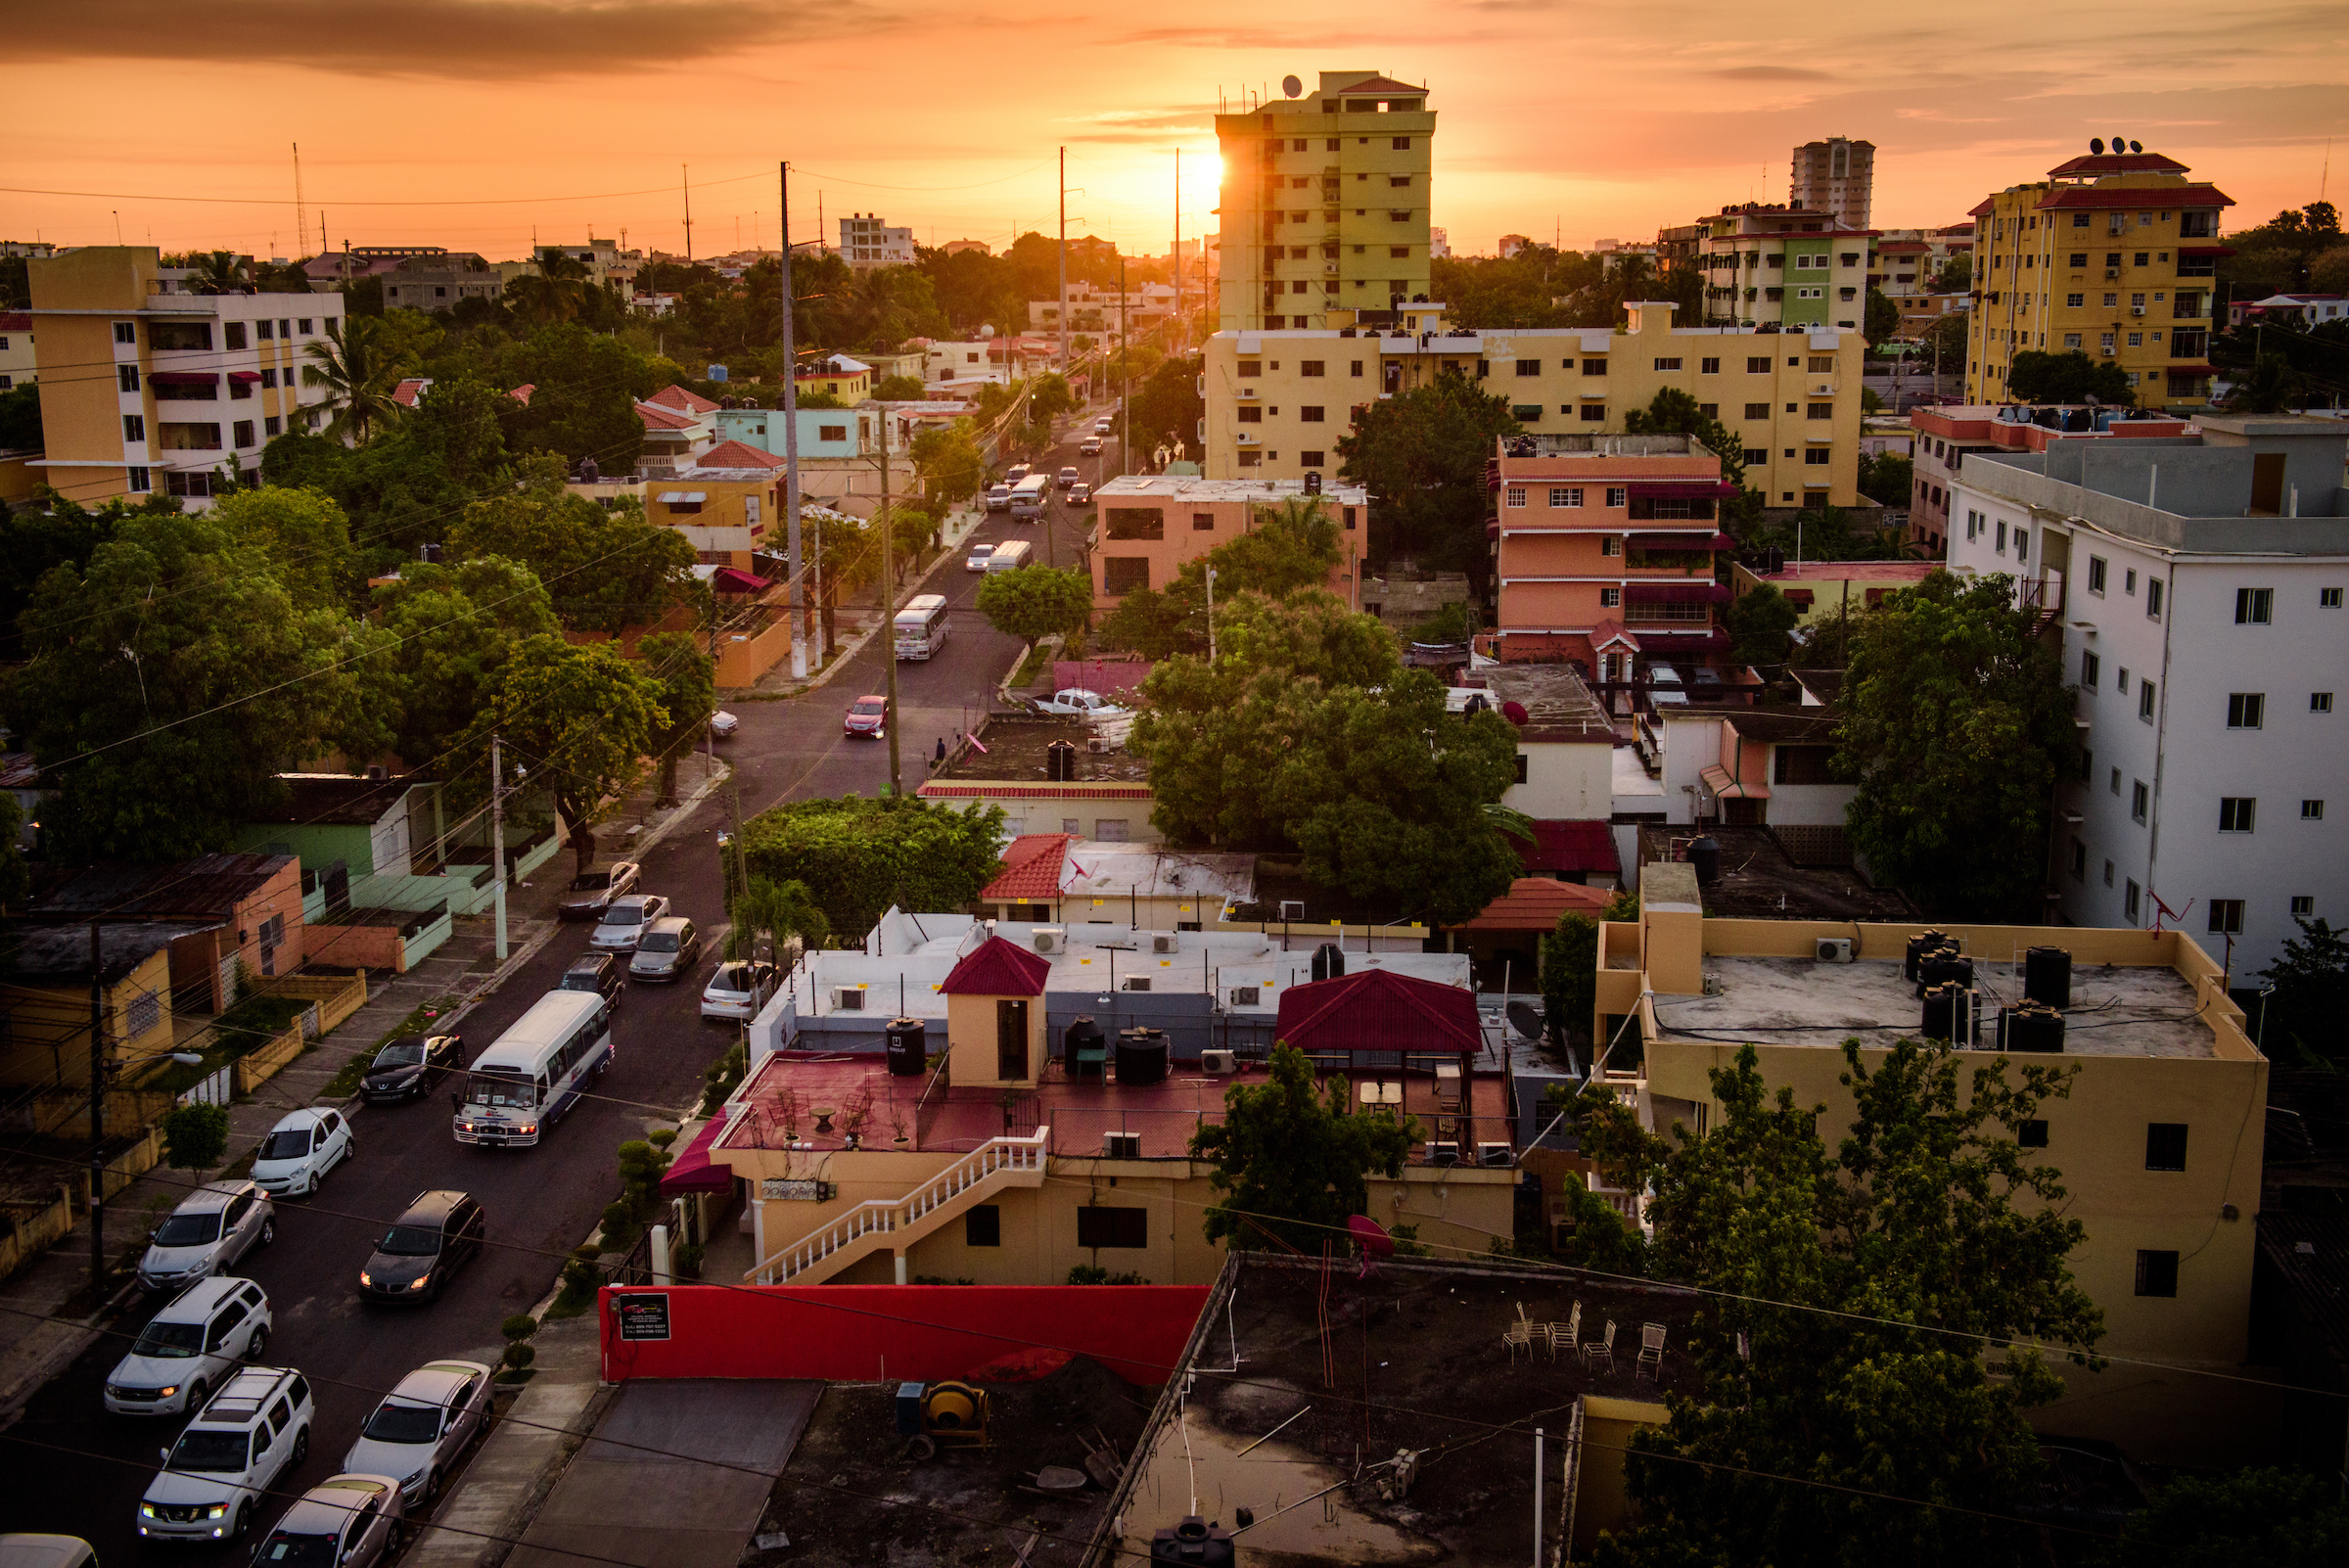 Sunrise in Santo Domingo, Dominican Republic, on Monday, March 20, 2017. LCMS Communications/Erik M. Lunsford